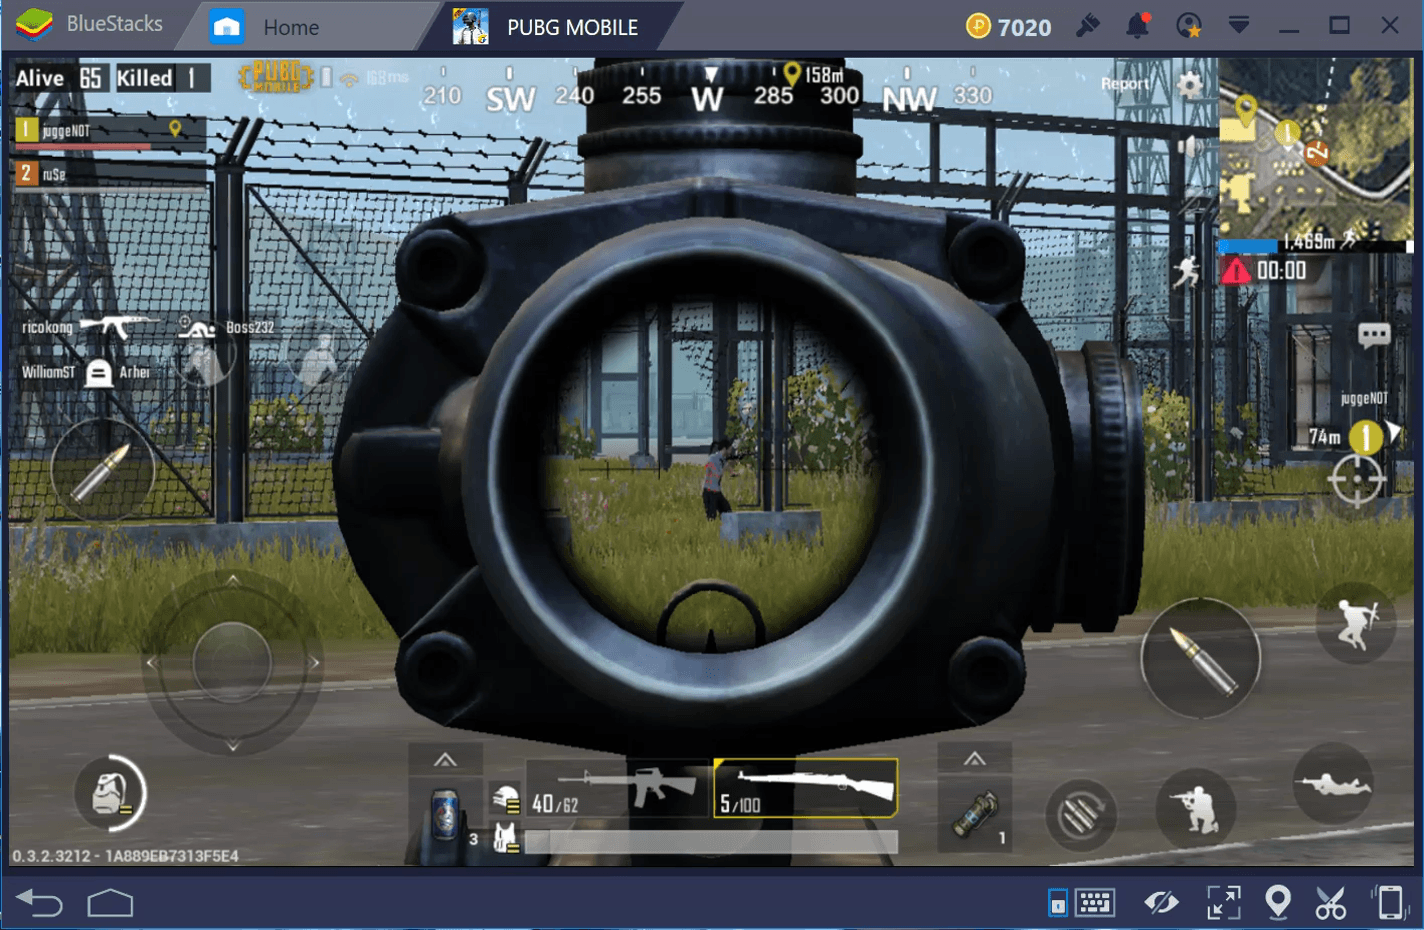 Expert PUBG Mobile Sniping Guide | BlueStacks